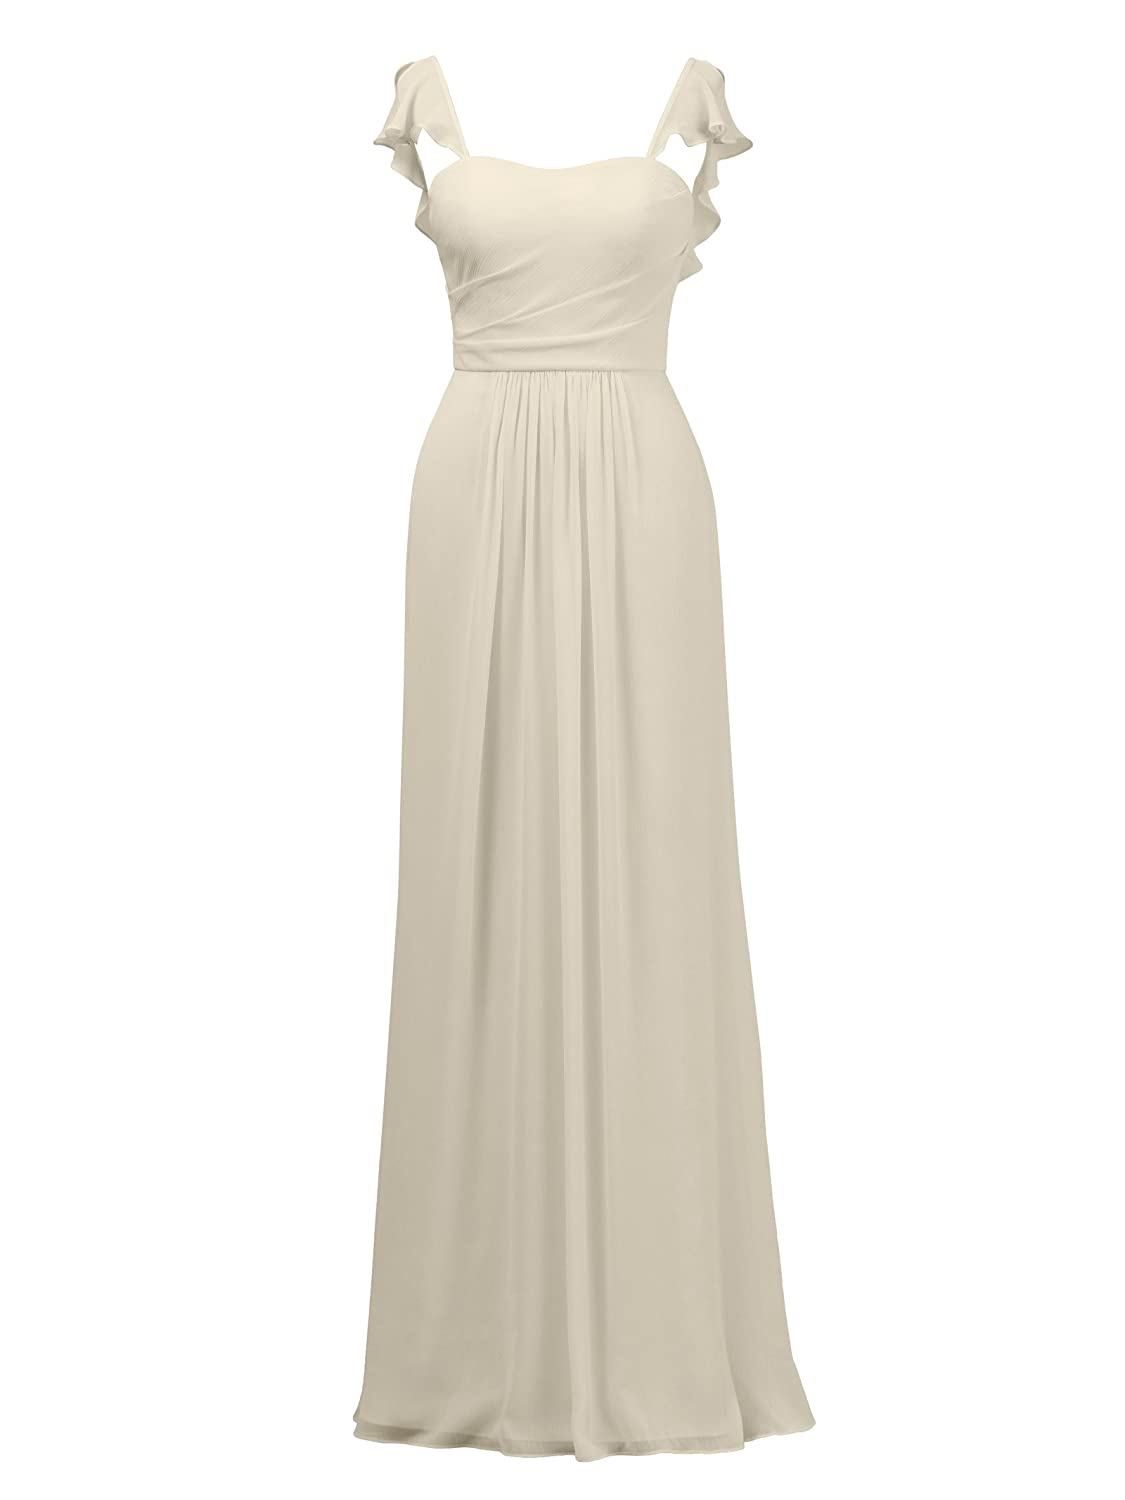 Champagne Alicepub Ruffles Bridesmaid Dress with Cap Sleeve Formal Evening Party Prom Gown